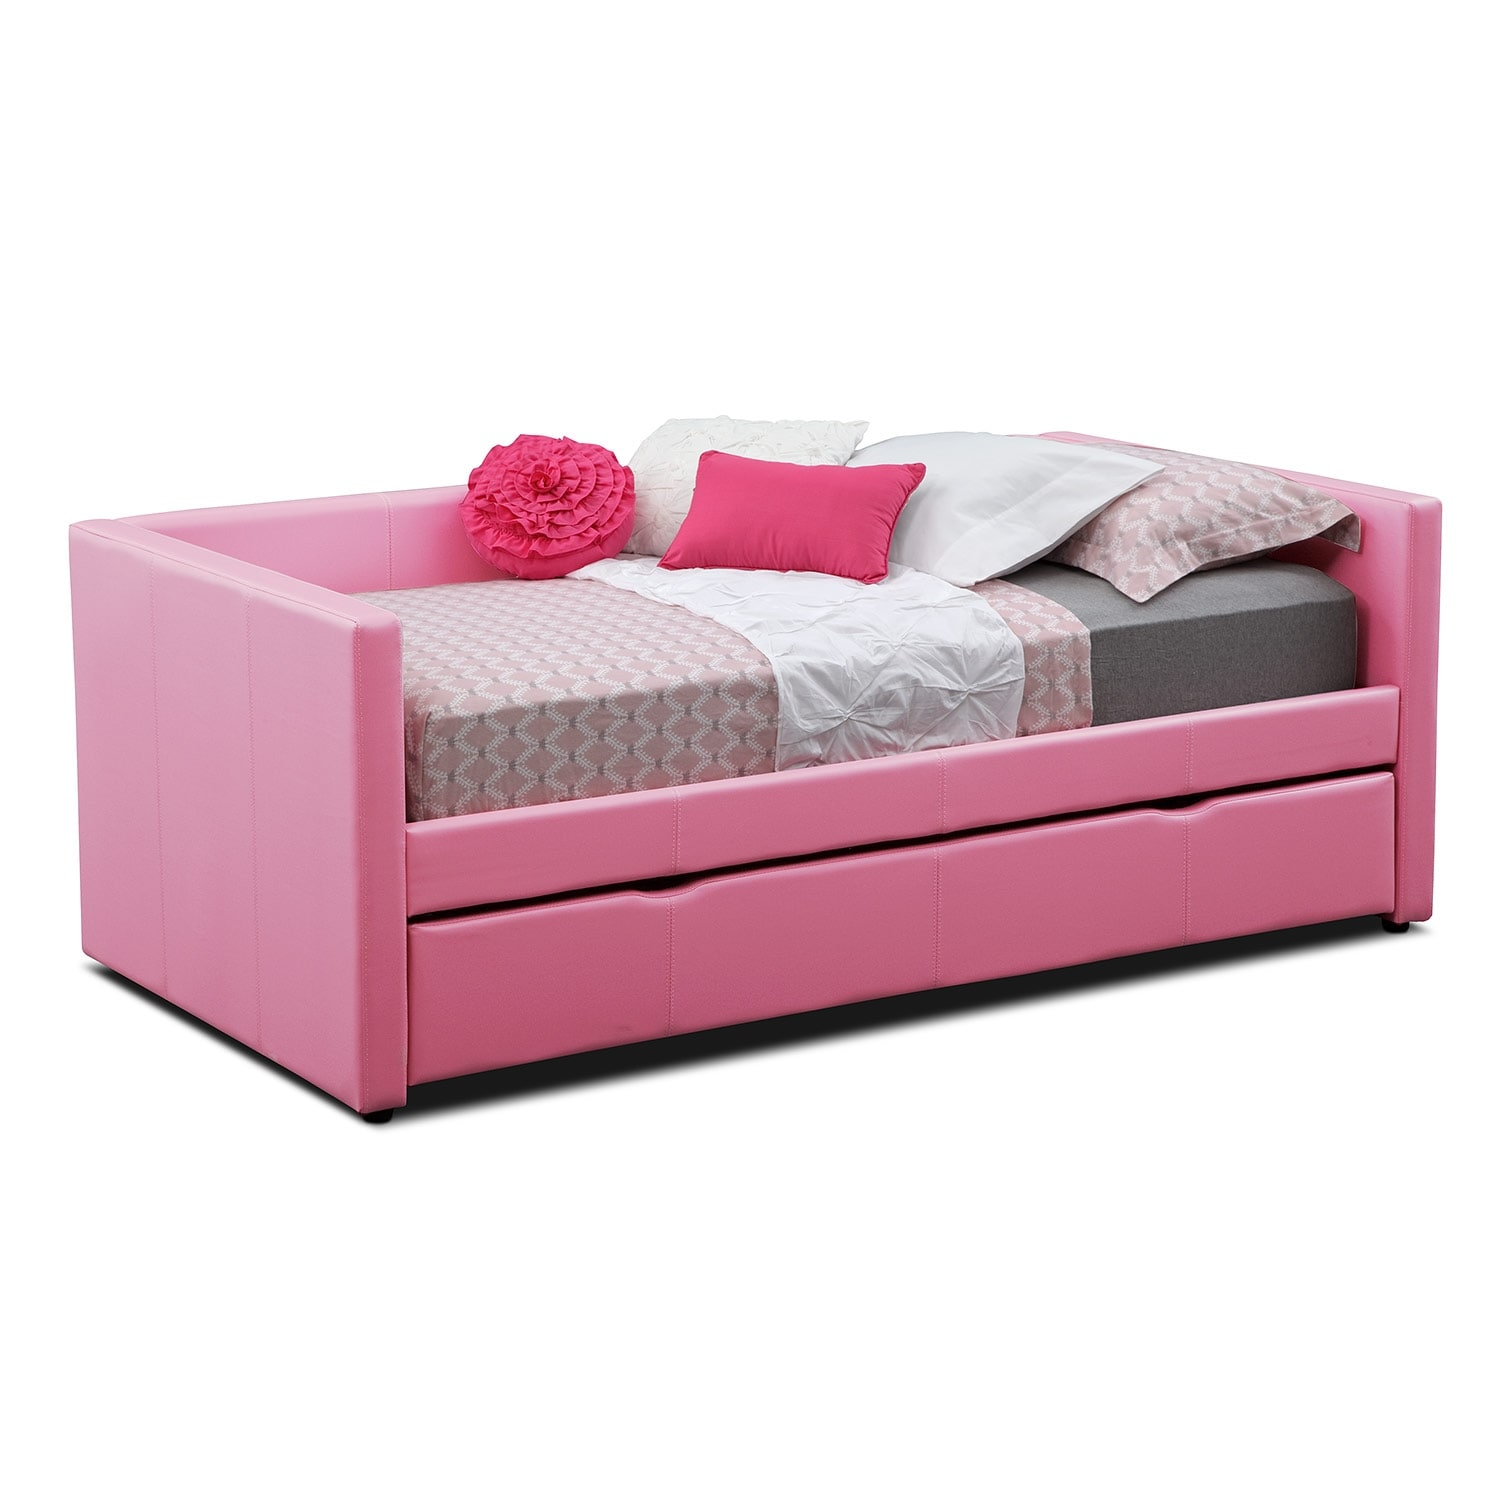 Carey Pink Twin Daybed with Trundle : Value City Furniture